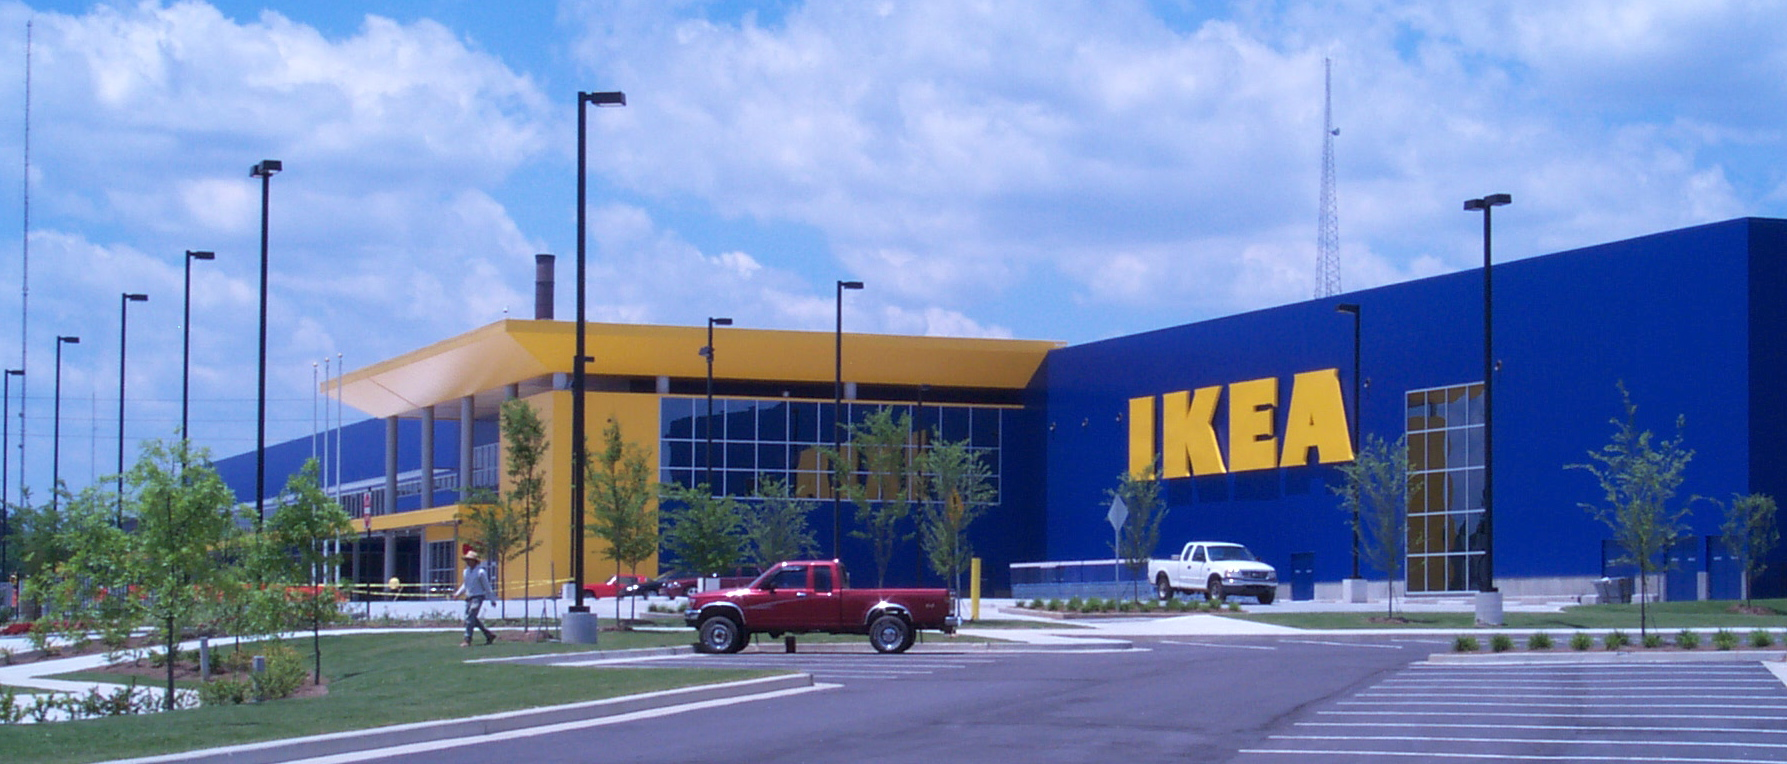 ikea atlanta flickr photo sharing